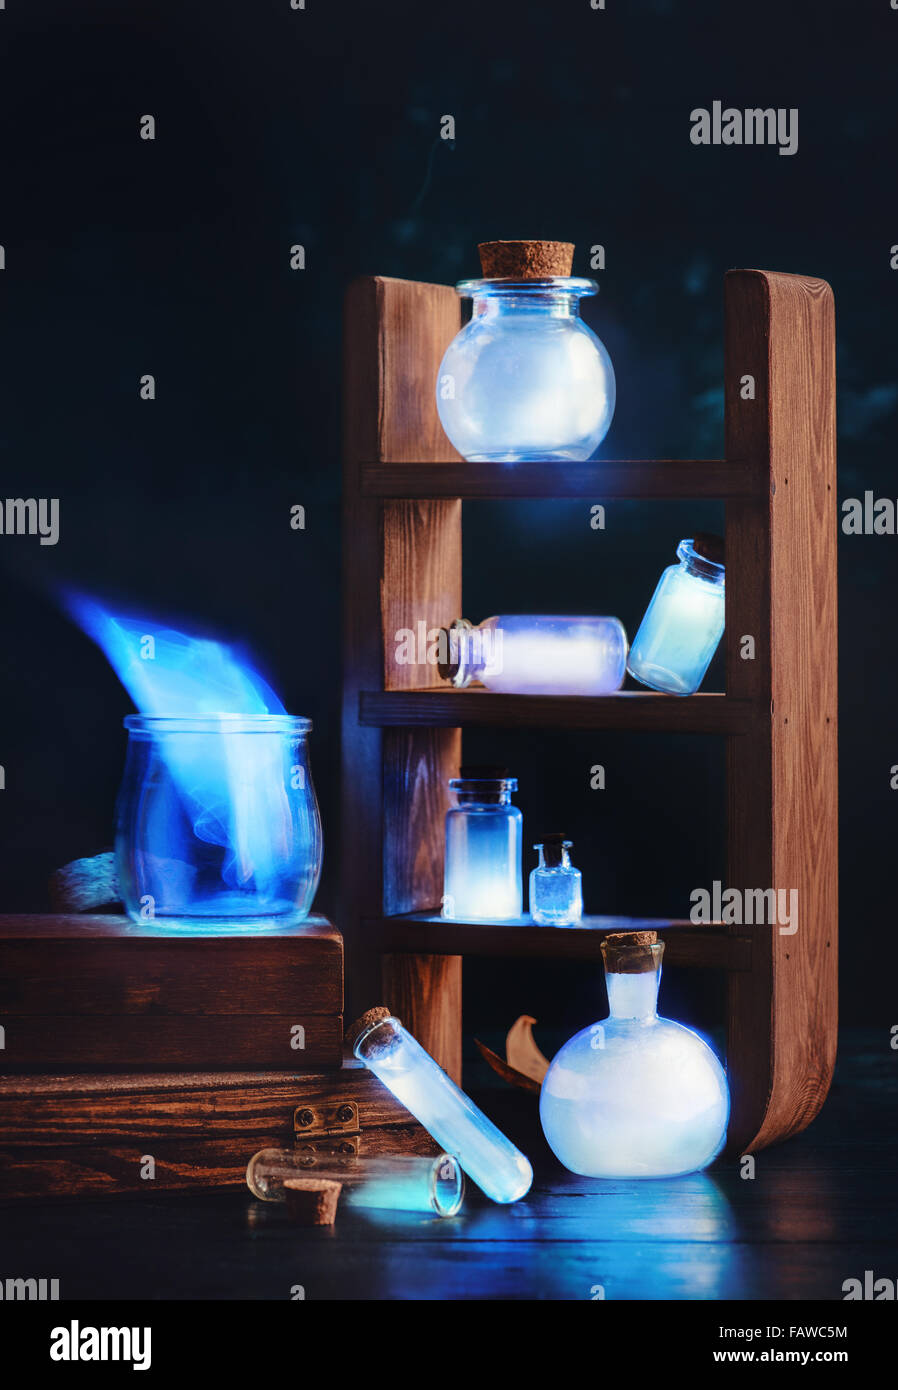 Glowing memories - Stock Image